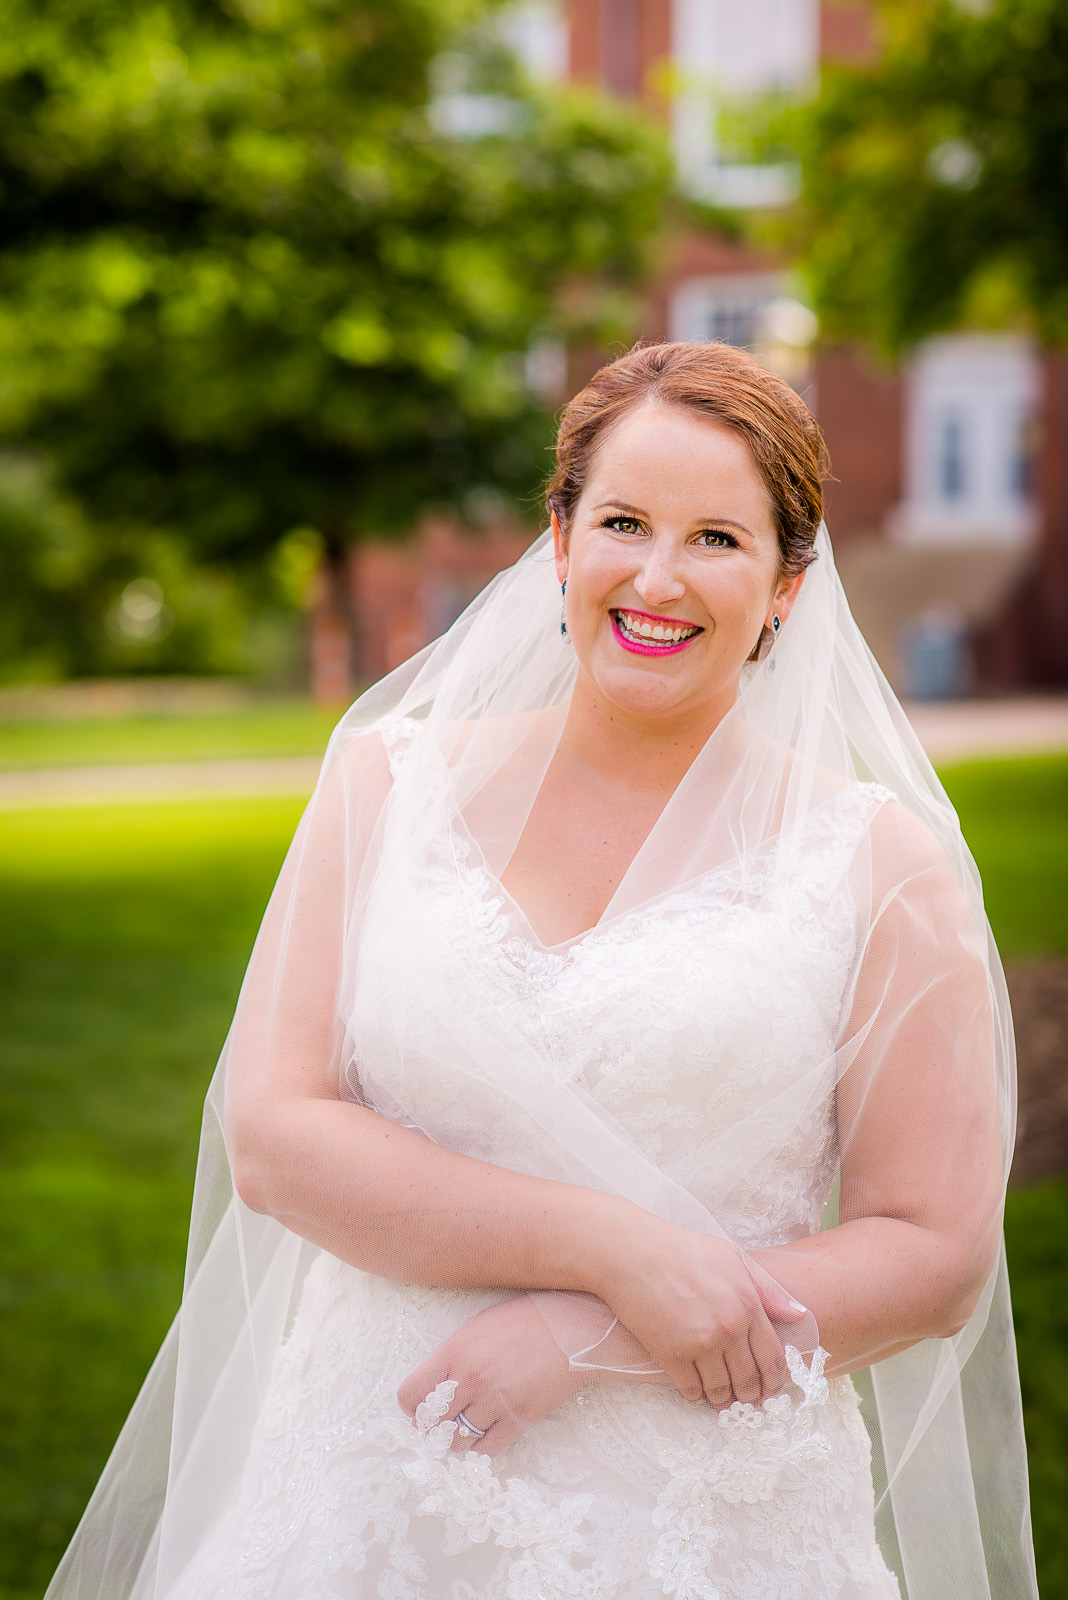 Eric_and_Christy_Photography_Blog_2018_Portraits-41